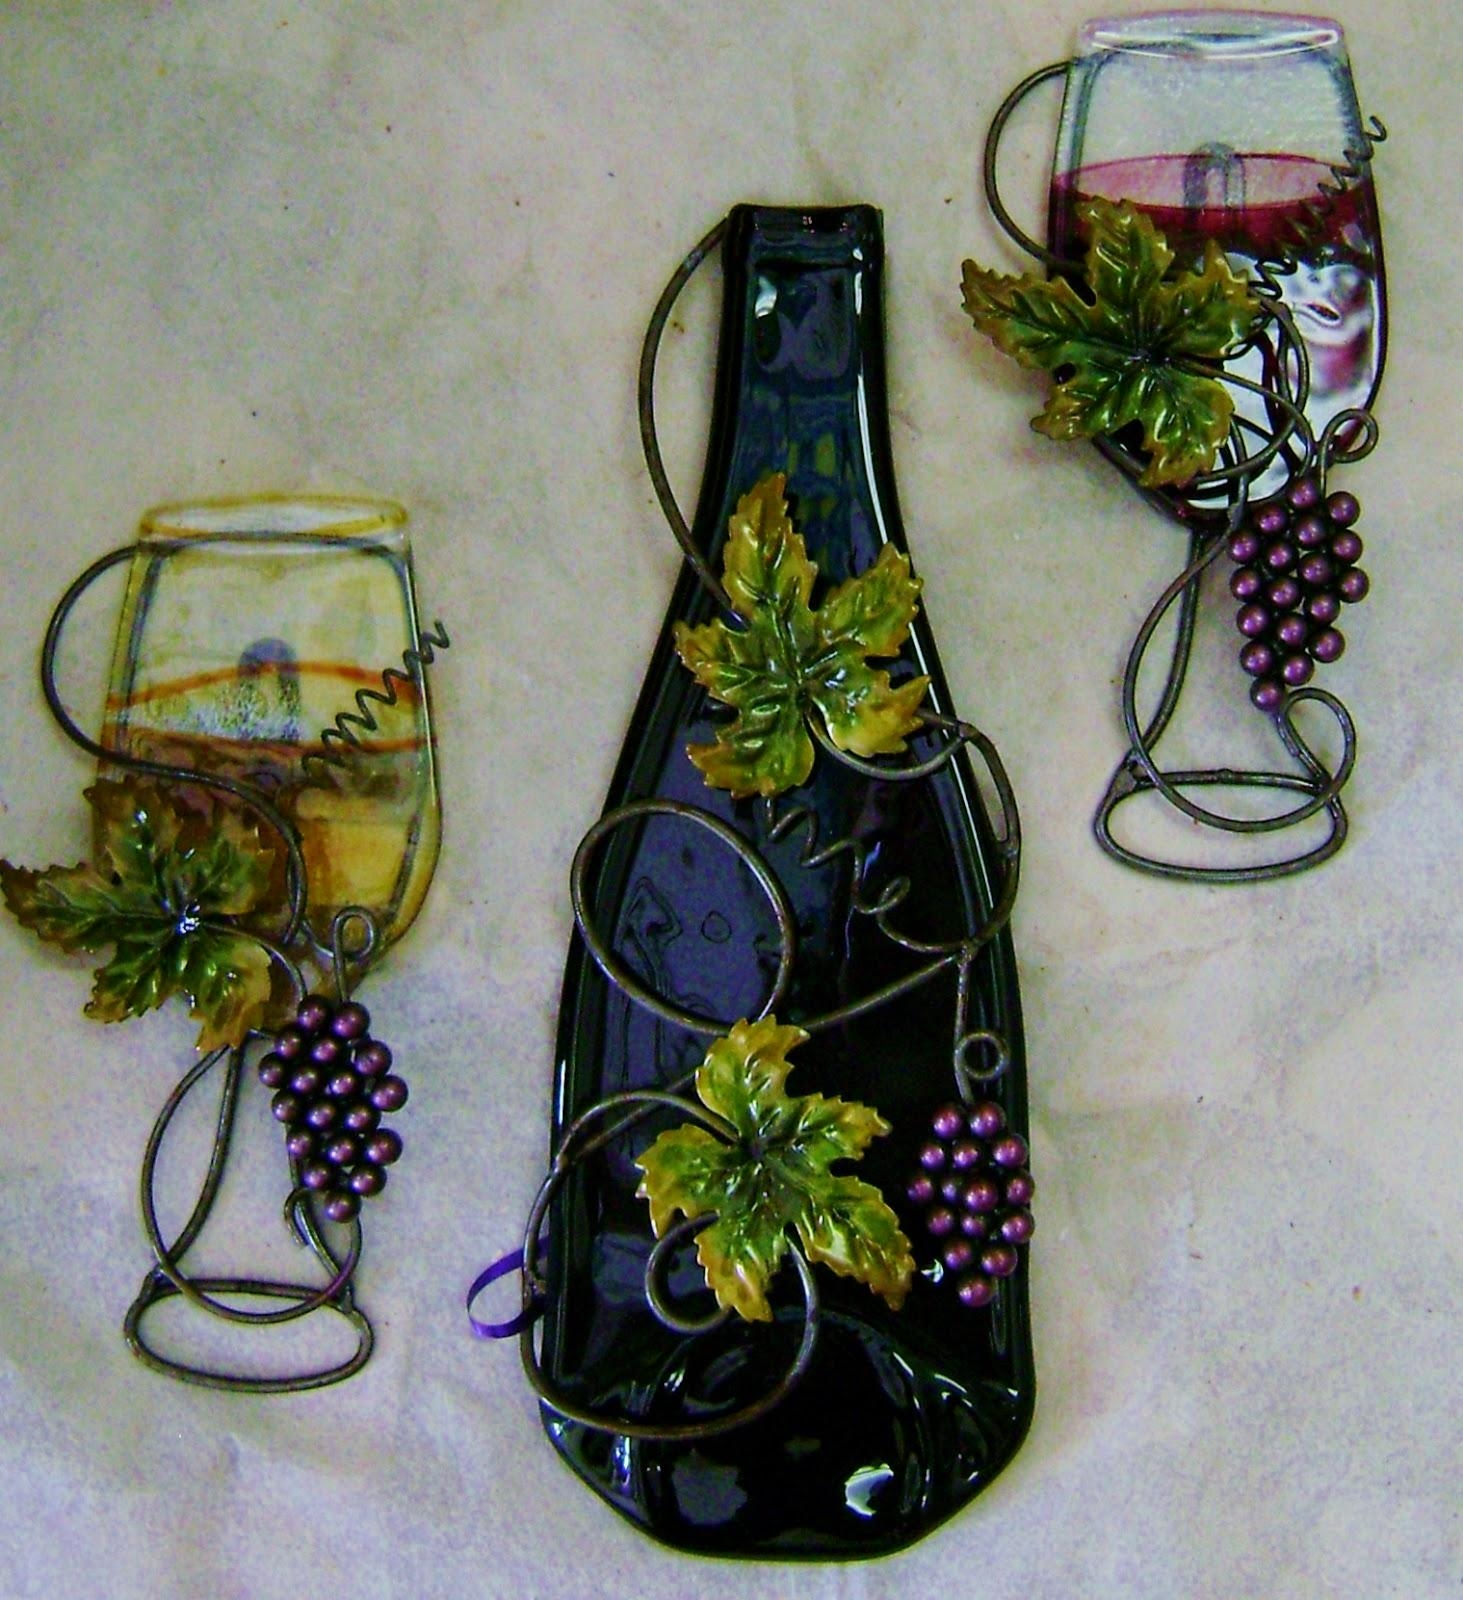 Welcome To Inspire On The Danforth! A Great Little Store For Great Throughout Wine Metal Wall Art (View 19 of 20)